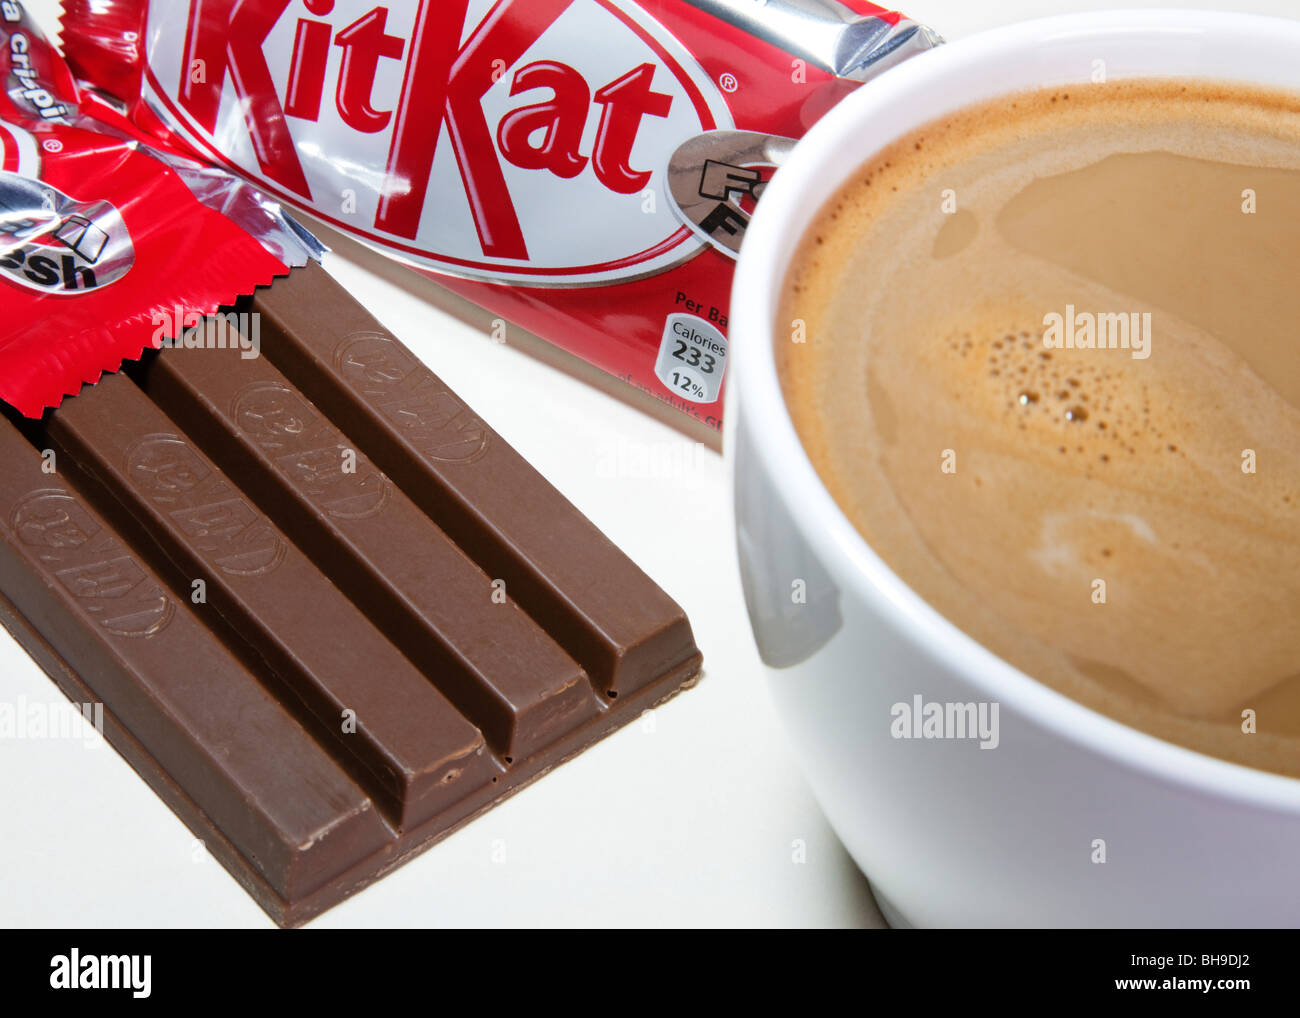 Nestle's Kitkat bar with a cup of coffee. - Stock Image